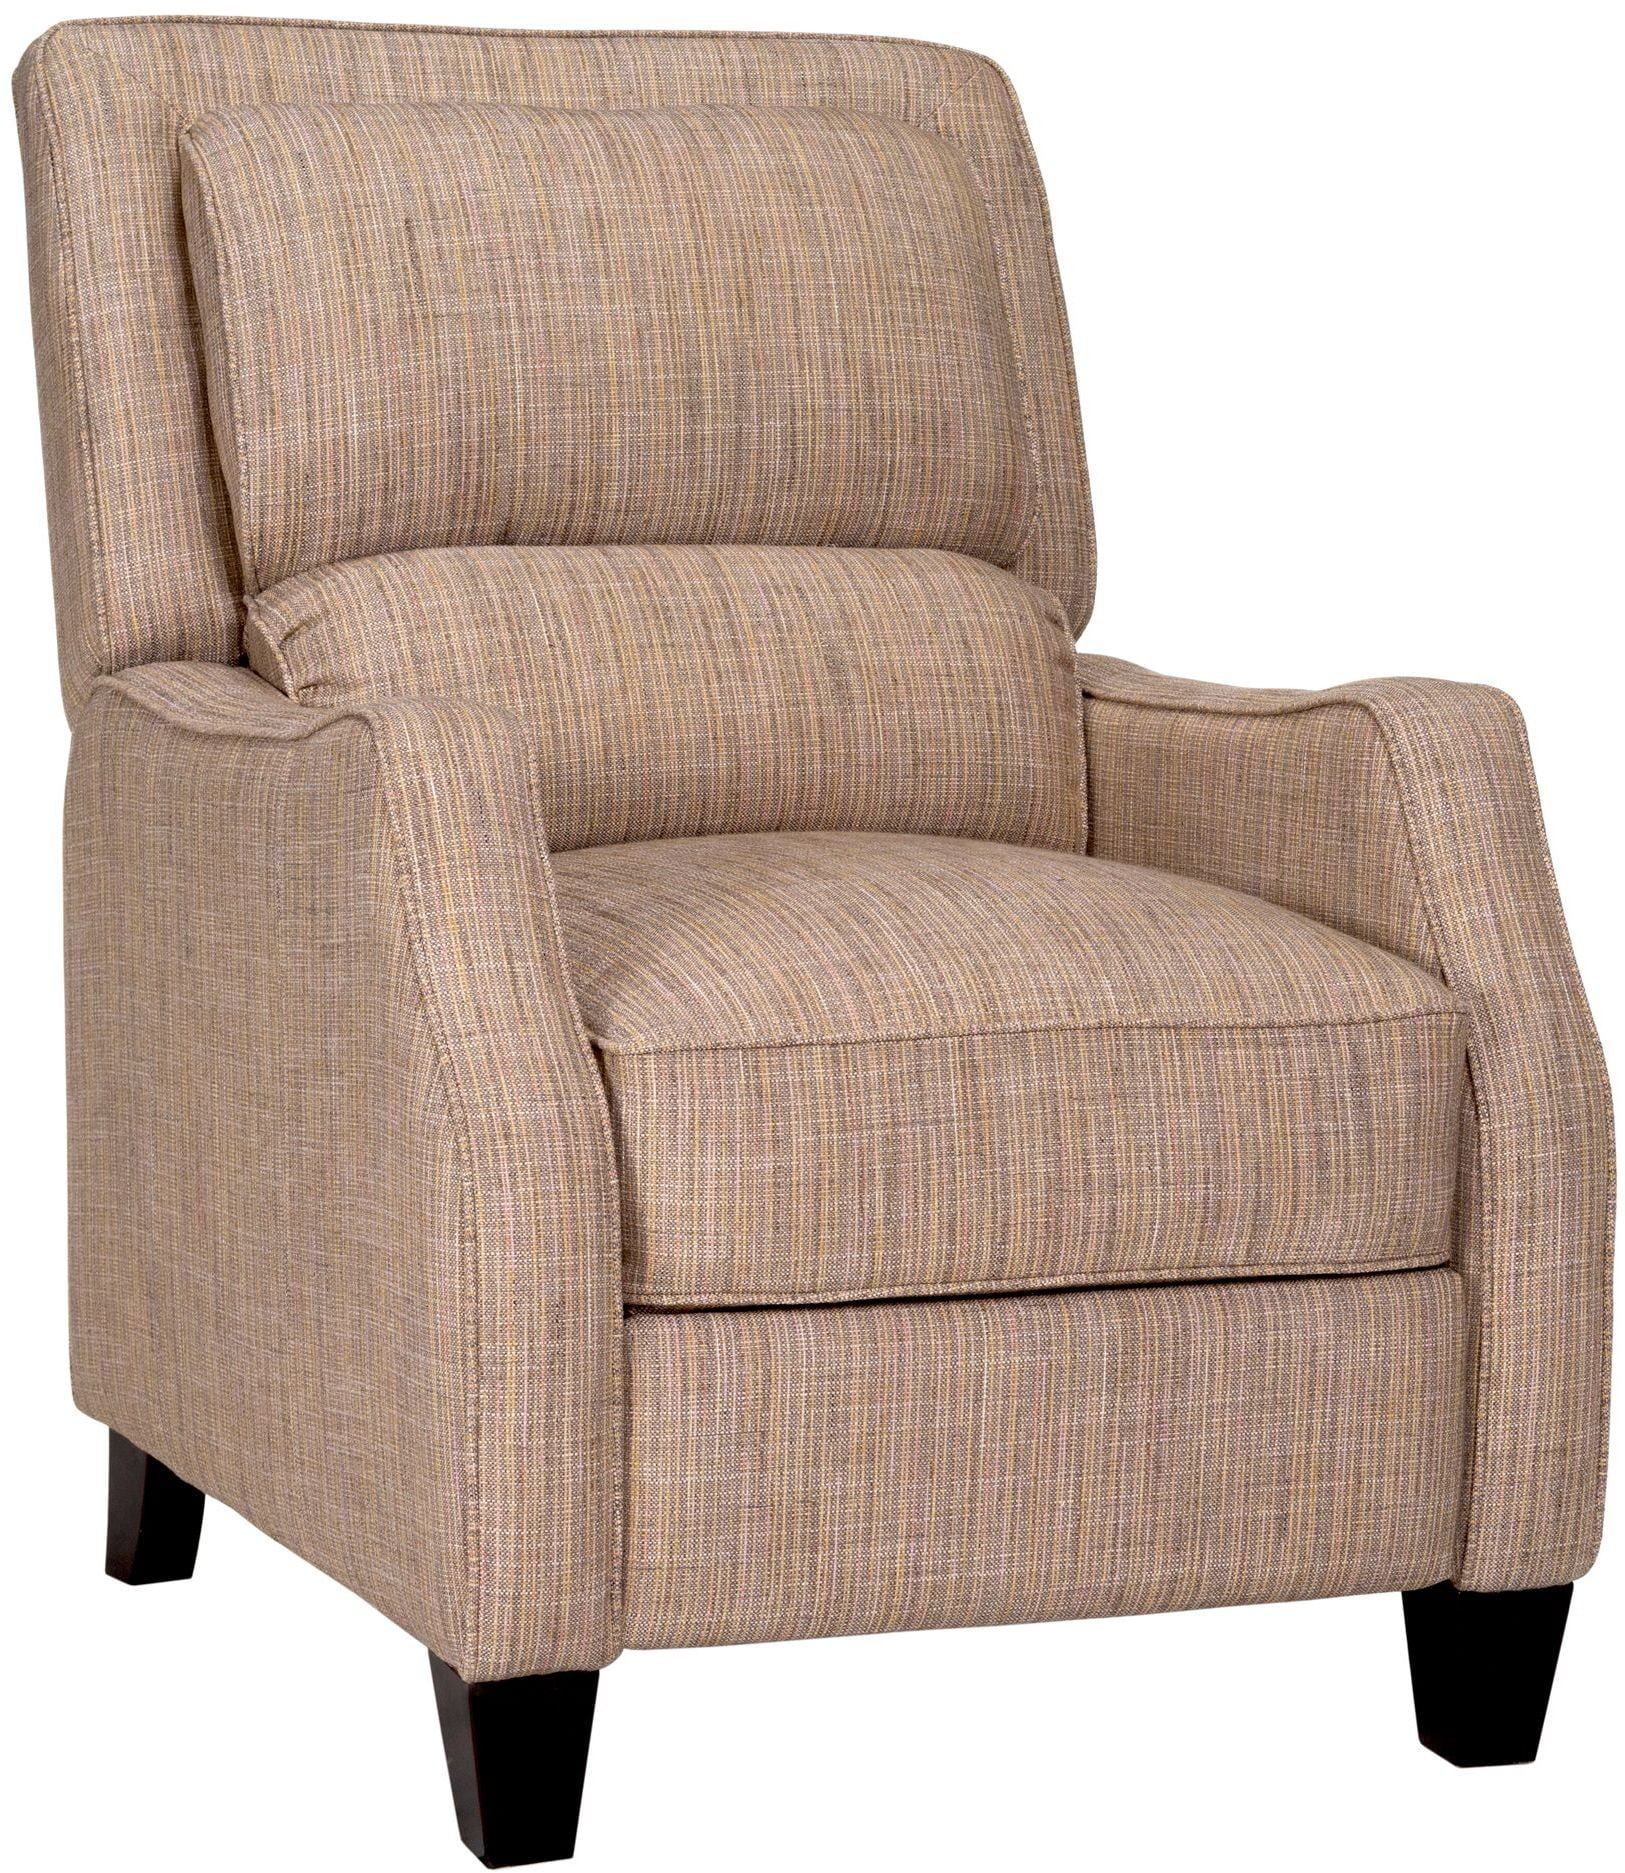 X. Duncan Malin Cathedral Recliner